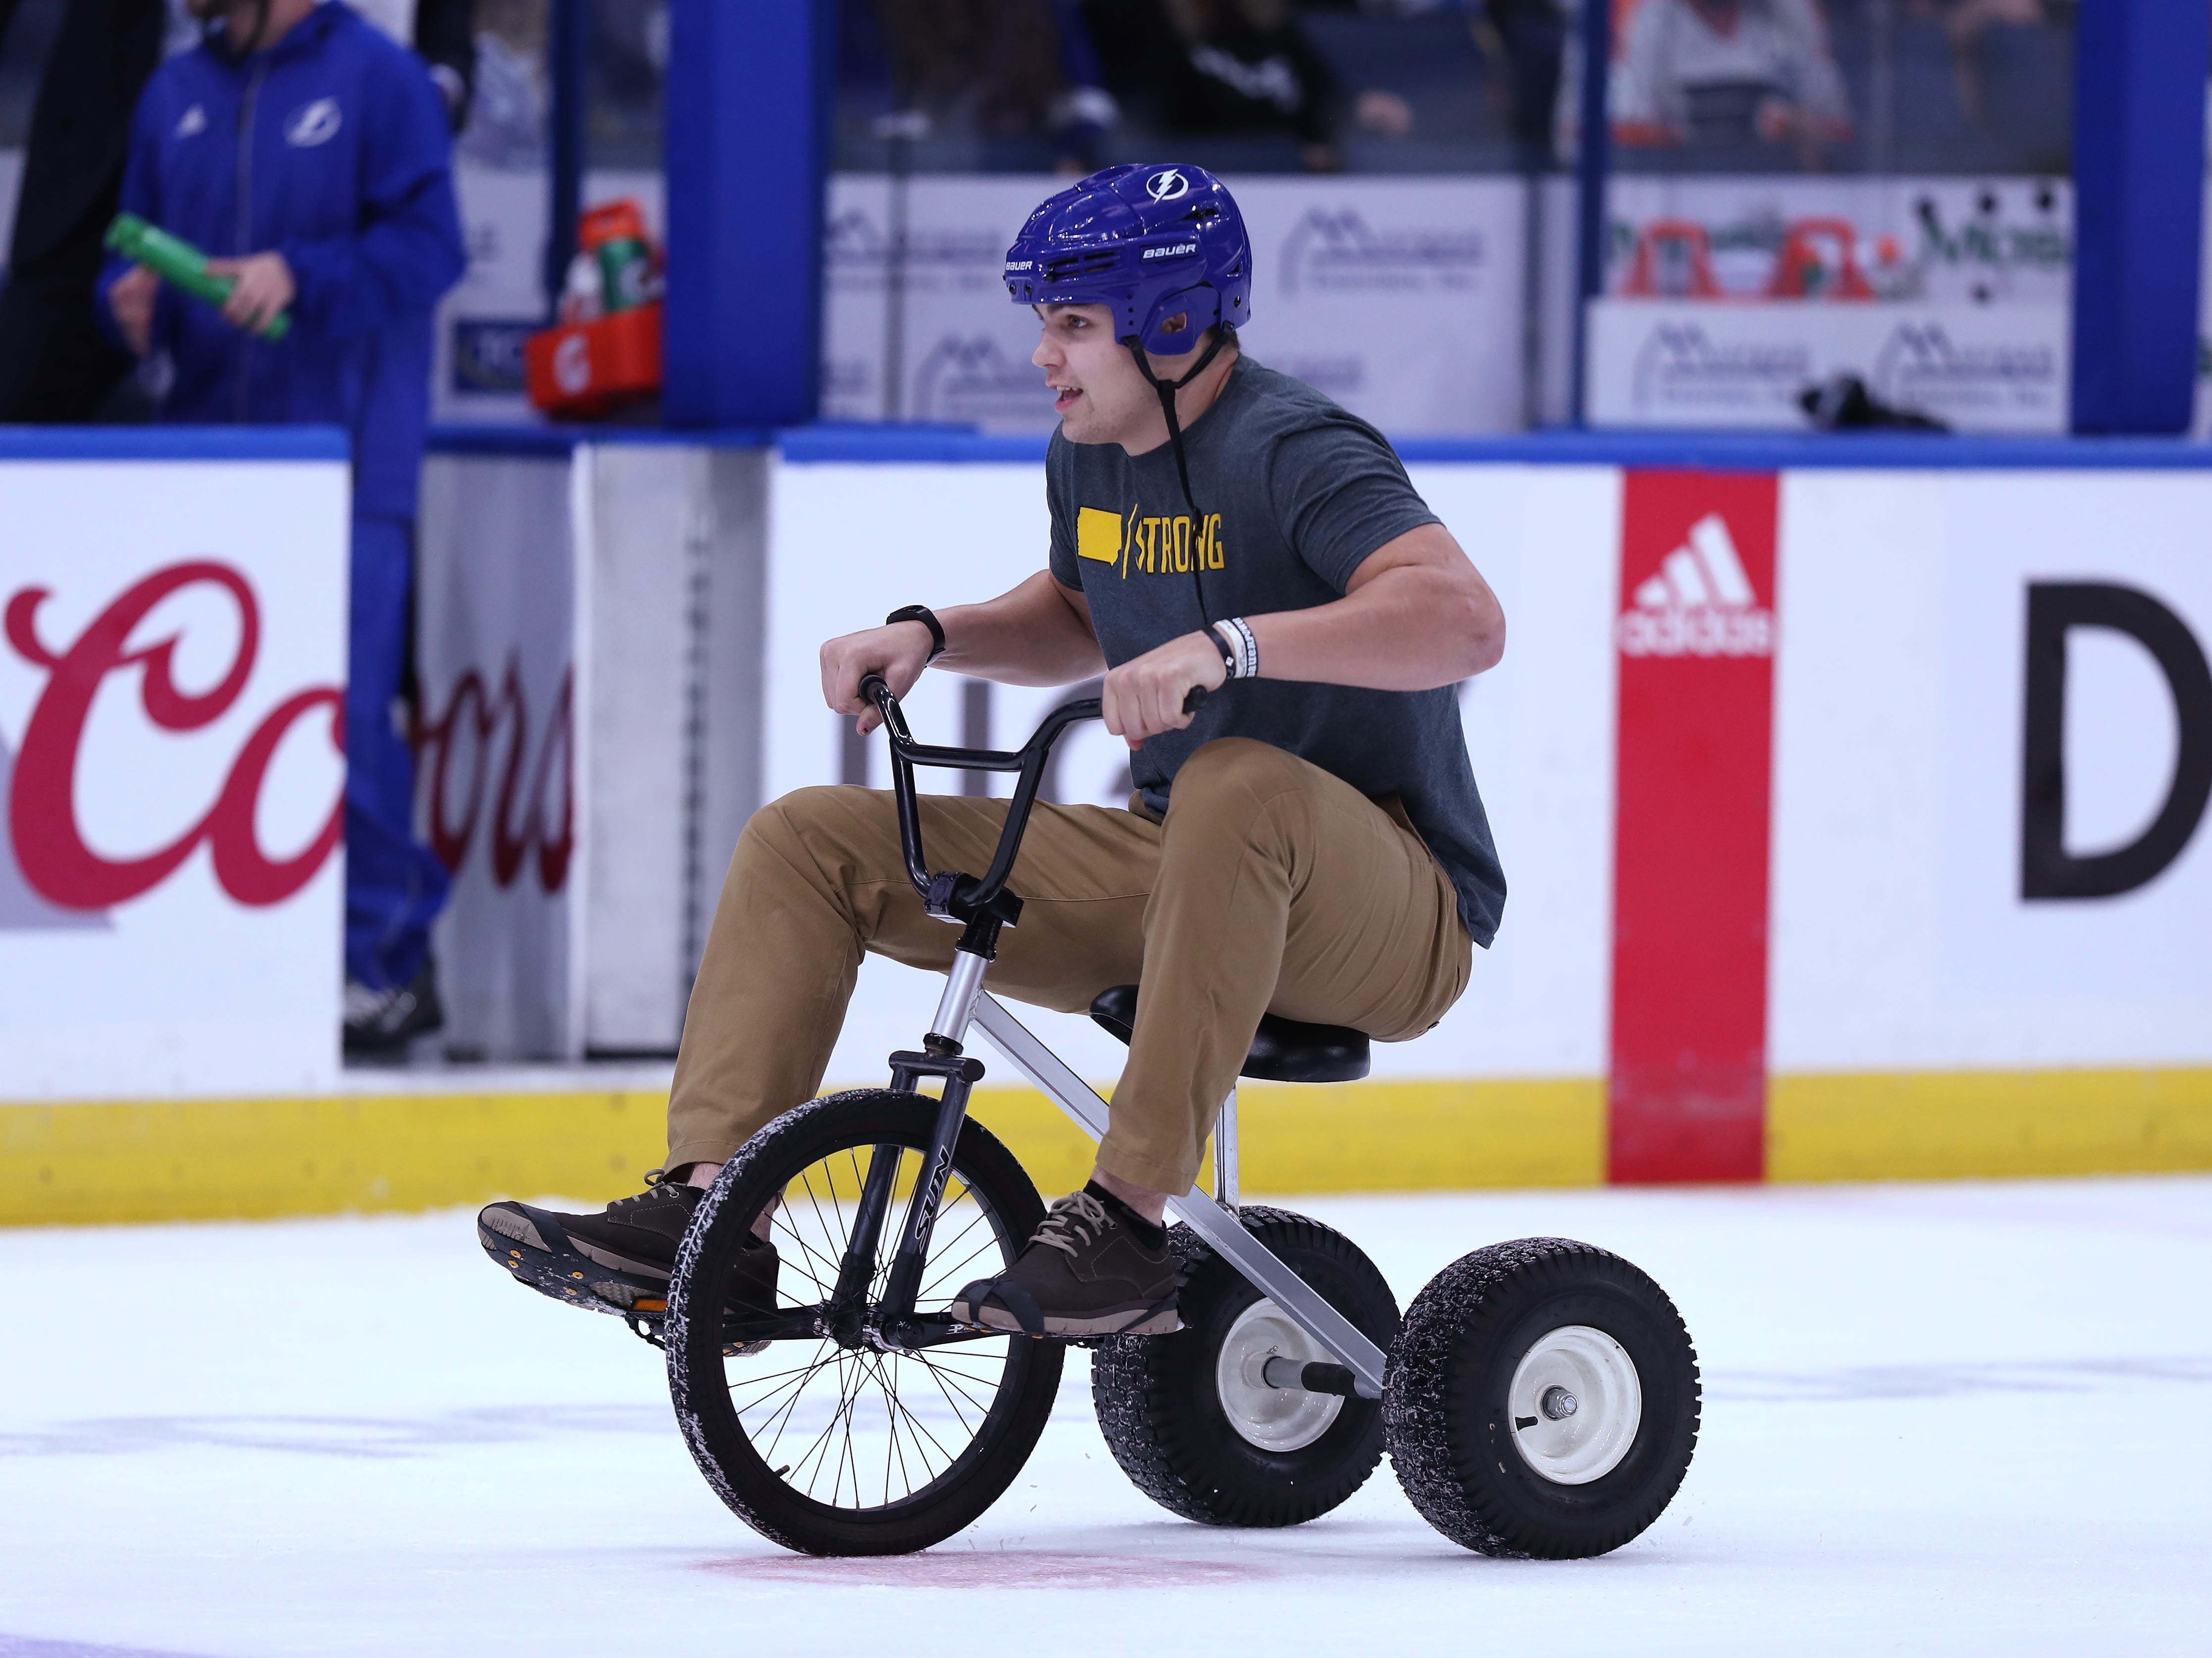 Iowa Hawkeyes quarterback Nate Stanley (4) rides a tricycle on the ice during a contest against Mississippi State in the first intermission of the Tampa Bay Lightning game Thursday, December 27, 2018 at Amalie Arena.